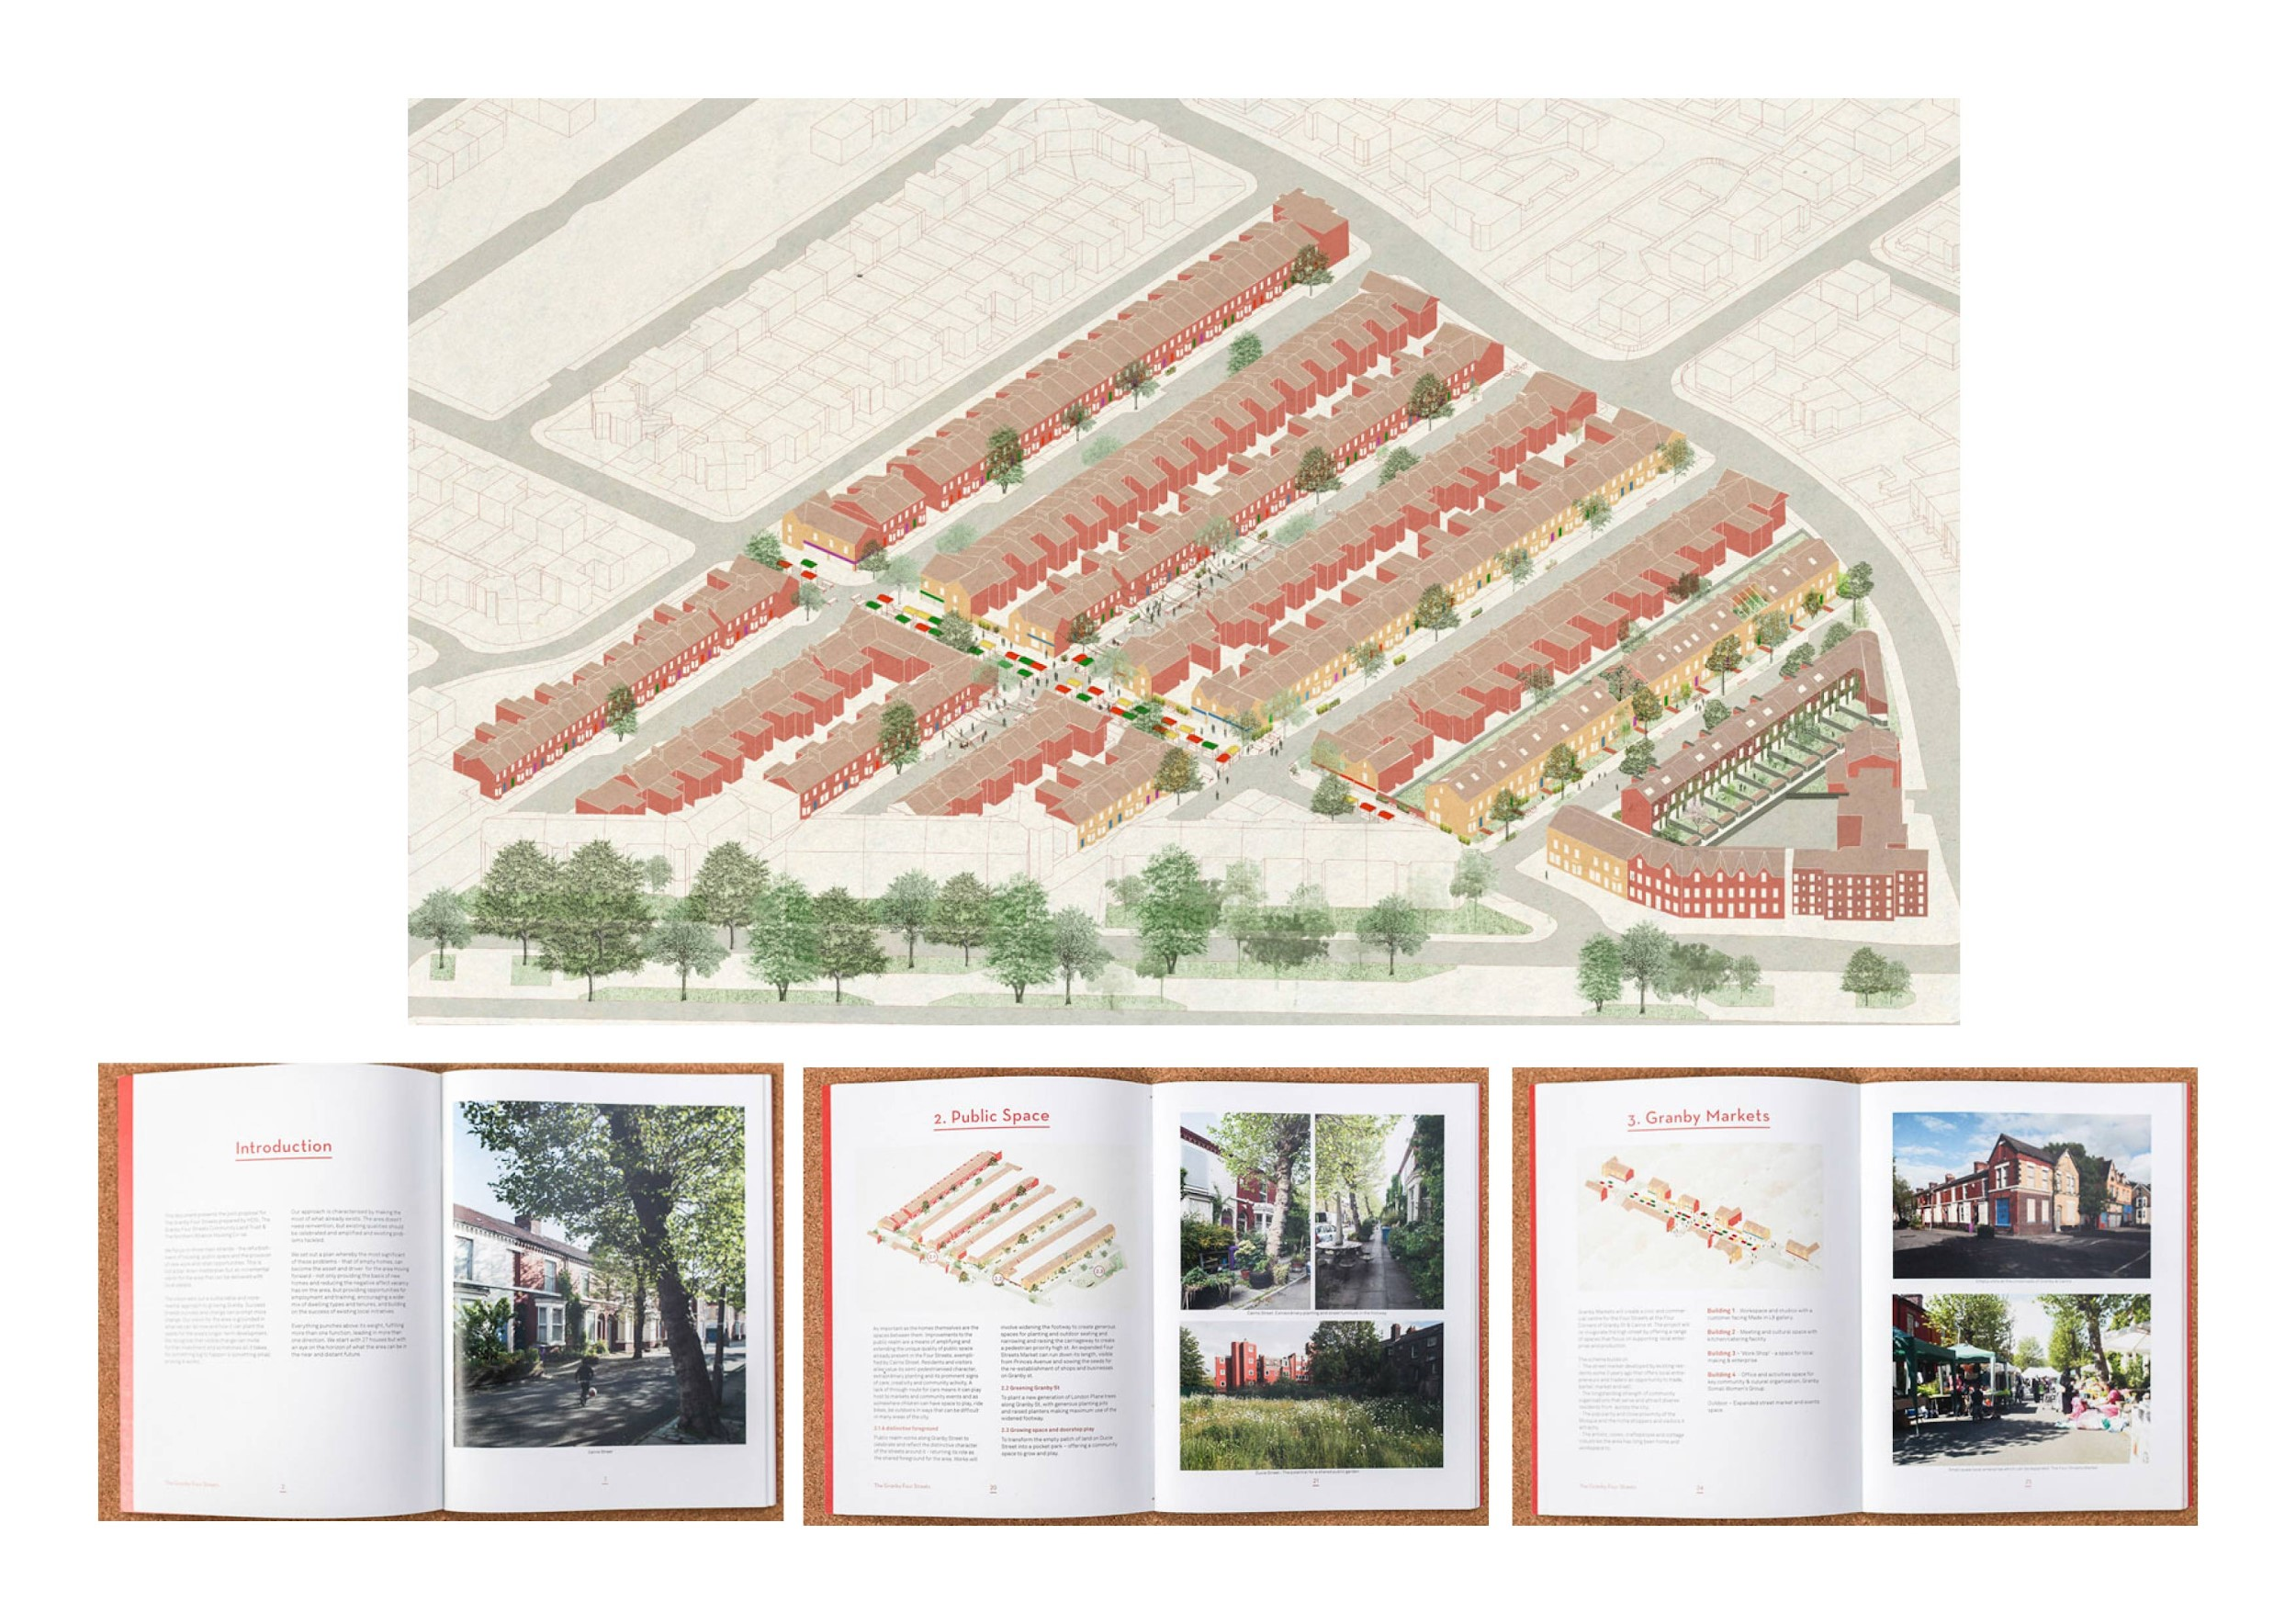 "- In the United States and globally, community land trusts (CLTs) are most often discussed as urban planning tools to expand and preserve perpetually affordable housing, but limited and shared equity land tenure models like those offered by CLTs also provide critical opportunities for innovative and community-responsive design interventions. These models interface with design at two key nexuses: they offer unique design opportunities to respond directly to community histories and needs, and they can be used together with the planning and implementation of large and small-scale urban design interventions.[1] It is imperative to more explicitly coordinate the practices of land tenure transformation and design to more fully recognize and realize design's potential as an agent of social change and to combat real estate speculation that is often catalyzed by the planning and implementation of public and private sector projects. Two case studies in the United States and the United Kingdom, respectively, provide insight into the design opportunities afforded by development on community-owned land, as well as the importance of considering land tenure in coordination with the development and implementation of urban planning and design projects in order to combat displacement and gentrification.Rondo Community Land Trust, St. Paul, Minnesota, United StatesOpportunities for designThroughout the 1960s, Rondo was St. Paul and Minneapolis' largest African American neighborhood, functioning as an active residential and commercial area and cultural locus for African Americans in the Twin Cities region. After the passage of the 1956 Federal Highway Act, the federal government routed what is now Interstate 94 through Rondo, displacing thousands of residents, destroying more than 600 homes, and bulldozing the neighborhood's central commercial strip of more than 300 small African-American owned businesses. After highway construction, Rondo's once-active commercial corridor, Selby Avenue, became characterized by empty storefronts due to discriminatory lending practices that barred business owners from capital and divestment that led to rising crime that encouraged business owners to relocate downtown.In Rondo, shared equity land tenure has contributed to the revitalization of Selby Avenue as a commercial corridor, providing opportunities for development that specifically responds to community history and needs. The Rondo Community Land Trust (RCLT) was established in 1993 to increase access to affordable home ownership by African American neighborhood residents who were historically denied capital under redlining policies. Today, RCLT is leading the nation's CLTs to expand development beyond single-family housing. Their Selby Mission Victoria (SMV) Project is a mixed-use affordable senior housing development with affordable spaces for small, minority-owned businesses and will open in 2019.[1] Through the SMV project, RCLT hopes to enhance its work catalyzing an ""African American Cultural Corridor"" in central Selby by ""retain[ing], stabiliz[ing], and promot[ing] small, local, and minority owned businesses.""[2] In the case of Rondo, community land ownership has led to design interventions that directly respond to locally-specific community histories: RCLT's commercial corridor development work incorporates affordable senior housing less viable in market-rate development, while also providing affordable commercial spaces in response the historic dispossession of majority African-American businesses owned and operated businesses in Rondo before urban renewal.Coordinating land tenure and design interventionsToday, 1960s highway construction continues to reverberate through contemporary debates about neighborhood development and equity in Rondo. Plans spearheaded by the Urban Land Institute (ULI) propose a land bridge over Interstate 94 that would convert part of the highway through Rondo into a public amenity. The land bridge is designed to respond to the mid-century urban renewal policies that routed Interstate 94 through Rondo. However, it poses risks similar to those of original highway construction in which large-scale investment in valuable public amenities may further gentrify Rondo without sufficient anti-speculation mechanisms like those provided by shared equity land tenure through RCLT.[3] While ULI has proposed the land bridge itself be owned and operated by RCLT, there has been little discussion of broader removal of land from the speculative market in Rondo and other historically affordable areas nearby at risk of speculation in response to the anticipated land bridge. Large design interventions like the land bridge should be considered in tandem with funding/financing for acquisition of properties to expand shared equity land tenure in and near the land bridge to ensure the efforts made to address historic injustices of displacement do not replicate the historic dispossession to which they respond.Granby 4 Streets, Liverpool, United KingdomOpportunities for designAs in the United States, planning and design practitioners in the United Kingdom were responsible for the violent dispossession brought on by urban renewal and redevelopment in the mid-20th century that displaced vibrant, low-income communities. In Liverpool, the CLT affordable housing model and coordinated design interventions were used to redevelop an area in which the city had previously divested in order to create opportunities for community development without displacement. Before the formation of the CLT, the Granby neighborhood was made up of vacant houses and deserted streets as a result of years of public divestment in the area.[4] Residents took matters into their own hands and used small scale design interventions and tactical urbanism[5] to prove the existence of a community, painting boarded up windows with murals of curtains and vases full of flowers, guerilla gardening streetscape improvements, and establishing a weekly market in the previously-vacant street.[6]Community-led activation of the public realm in the Granby 4 Streets area reflected the shared notions of spatialized-identity among local residents. Eleanor Lee, a Granby resident, describes these efforts, ""It completely turned the atmosphere around: now we had a pretty street that we could all be proud of.""[7] These actions combined with the collapse of government redevelopment plans post-recession led to the formation of the Granby 4 Streets Community Land Trust and the Liverpool City Council turning over the land and buildings to the CLT to redevelop.Today, the GCLT is lauded as a success - the renovation of ten homes won the coveted Turner Prize for co-operative design firm Assemble. Continued activation and beautification of Granby streets and city support has reignited housing association (private government-regulated non-profit organizations that maintain and finance social housing in the United Kingdom) interest in the neighborhood.[8] The GCLT is focused on expanding economic and social opportunities beyond housing with initiatives like job training and employment for young local residents by connecting them with construction contractors working in the neighborhood.[9] The street market continues to flourish as an economic and social space for local residents. Regeneration of the neighborhood is comprehensive and inclusive, one reporter writes, ""[the GCLT has made] Granby that rare thing in Britain: an area shaped in the image of its community.""[10] Federal social housing in the area will help ensure that neighborhood improvements by the GCLT will not catalyze gentrification in the neighborhood.The use and evolution of shared equity land tenure in Rondo and Liverpool reveal design opportunities afforded by CLTs in addition to the importance of coordinated land tenure and design interventions to achieve community development without risk of displacement and gentrification. Acknowledging historical injustices through design and embracing intentional and equitable design for all is our responsibility as practitioners. These two cases demonstrate how CLTs and design, together, can be used as a tool to create beautiful and necessary spaces for low-income communities that respond to local histories while remaining affordable and desirable for many years to come."